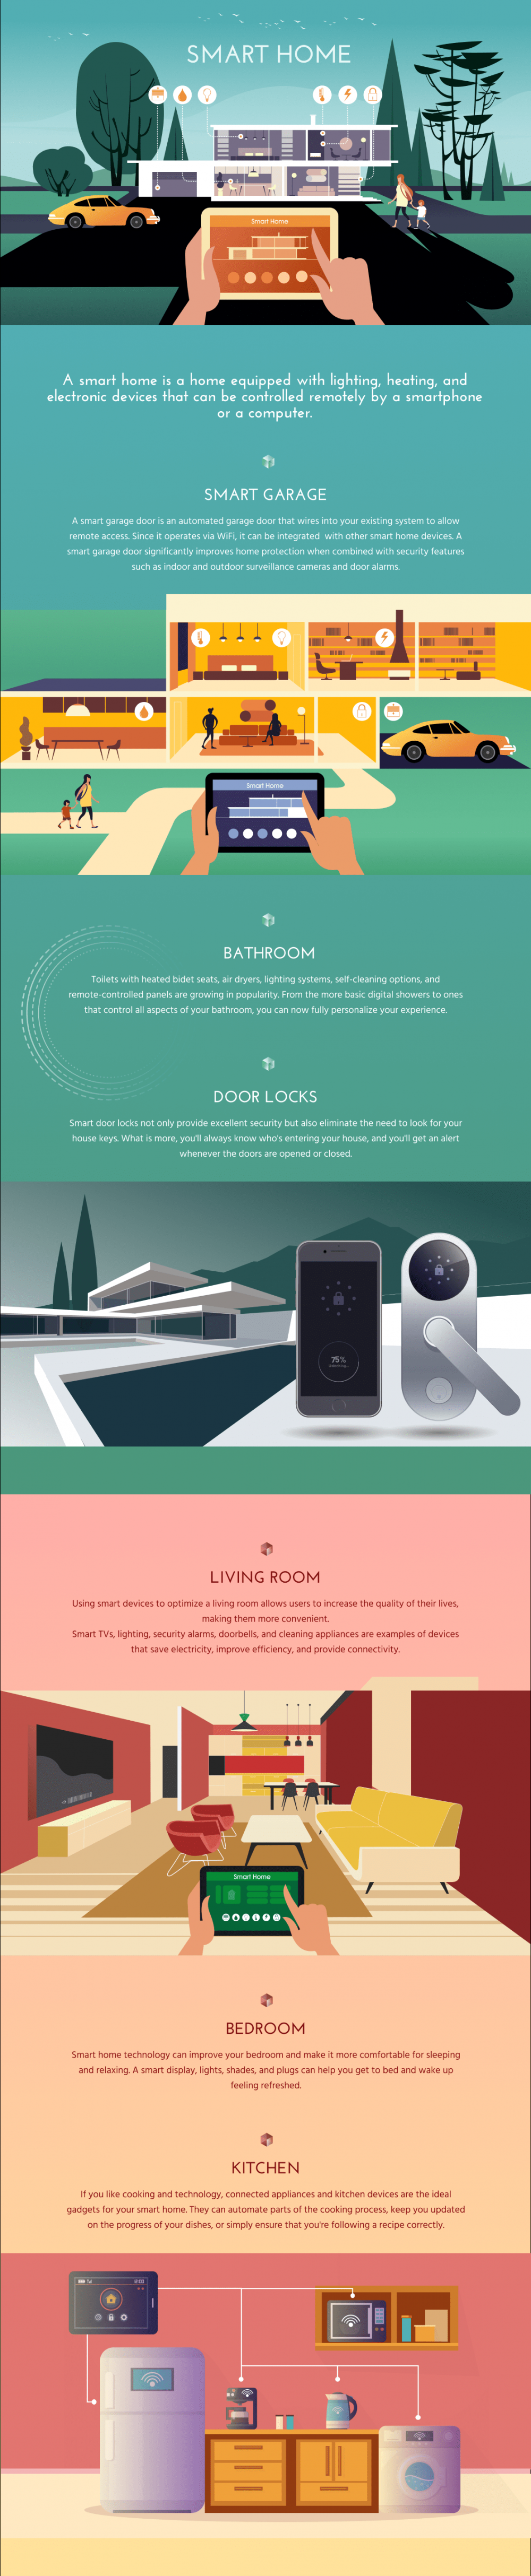 IoT and Home Automation: What Does the Future Hold?